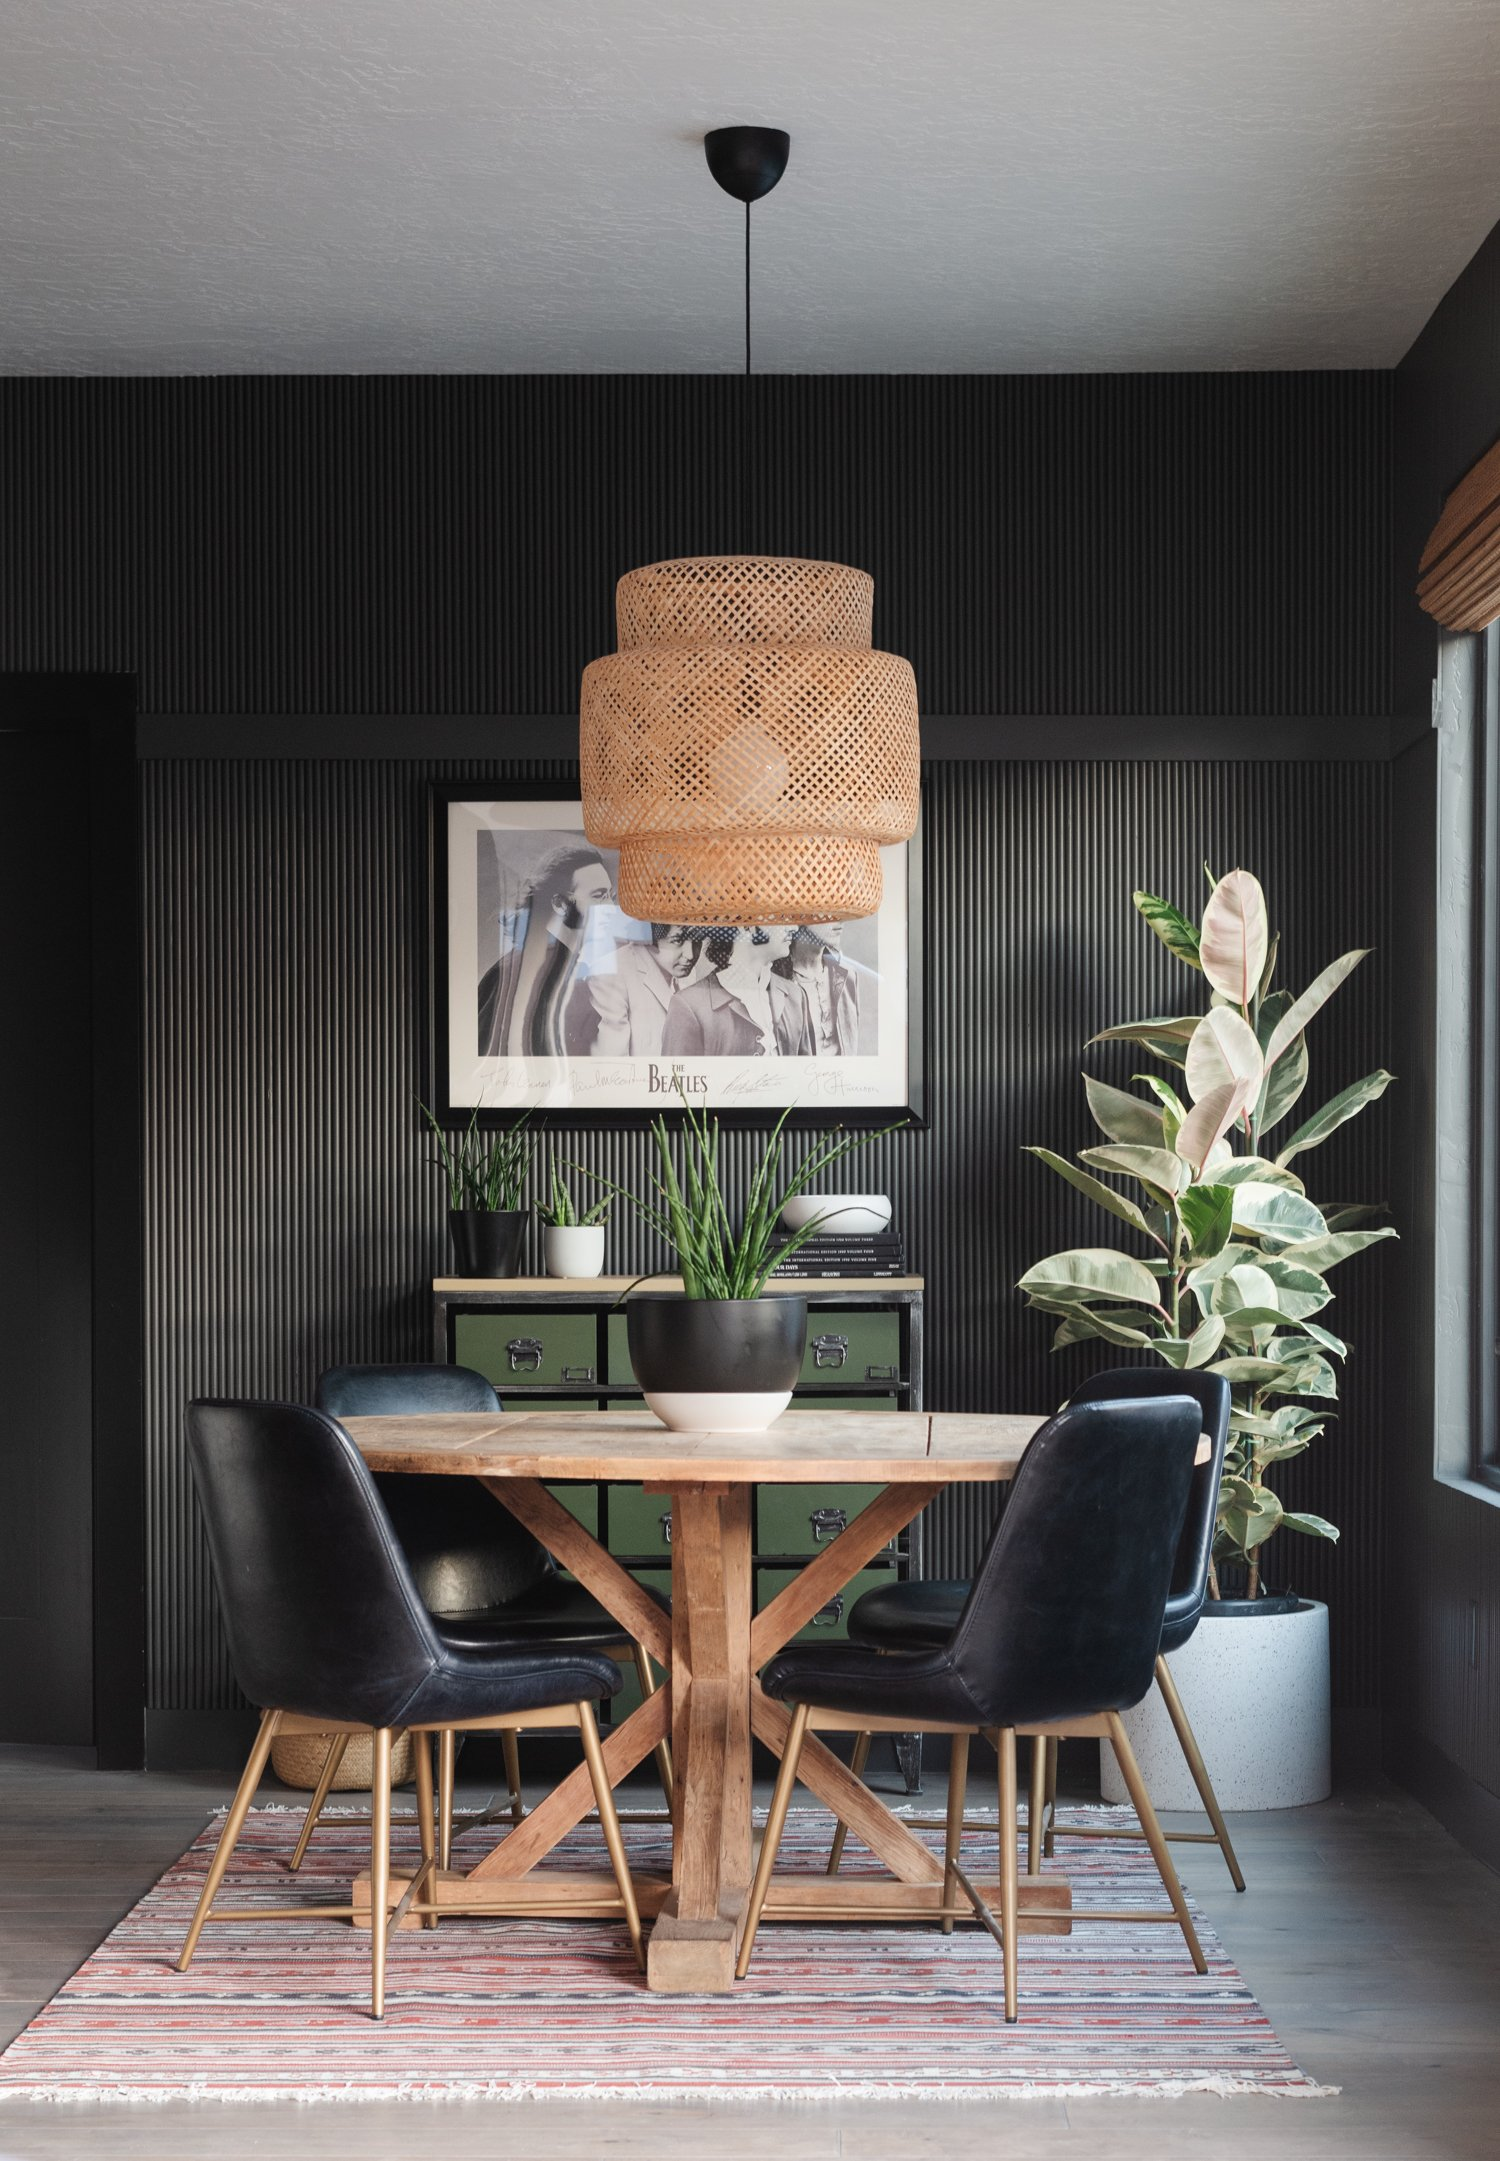 Sherwin Williams 2021 Color of the Year